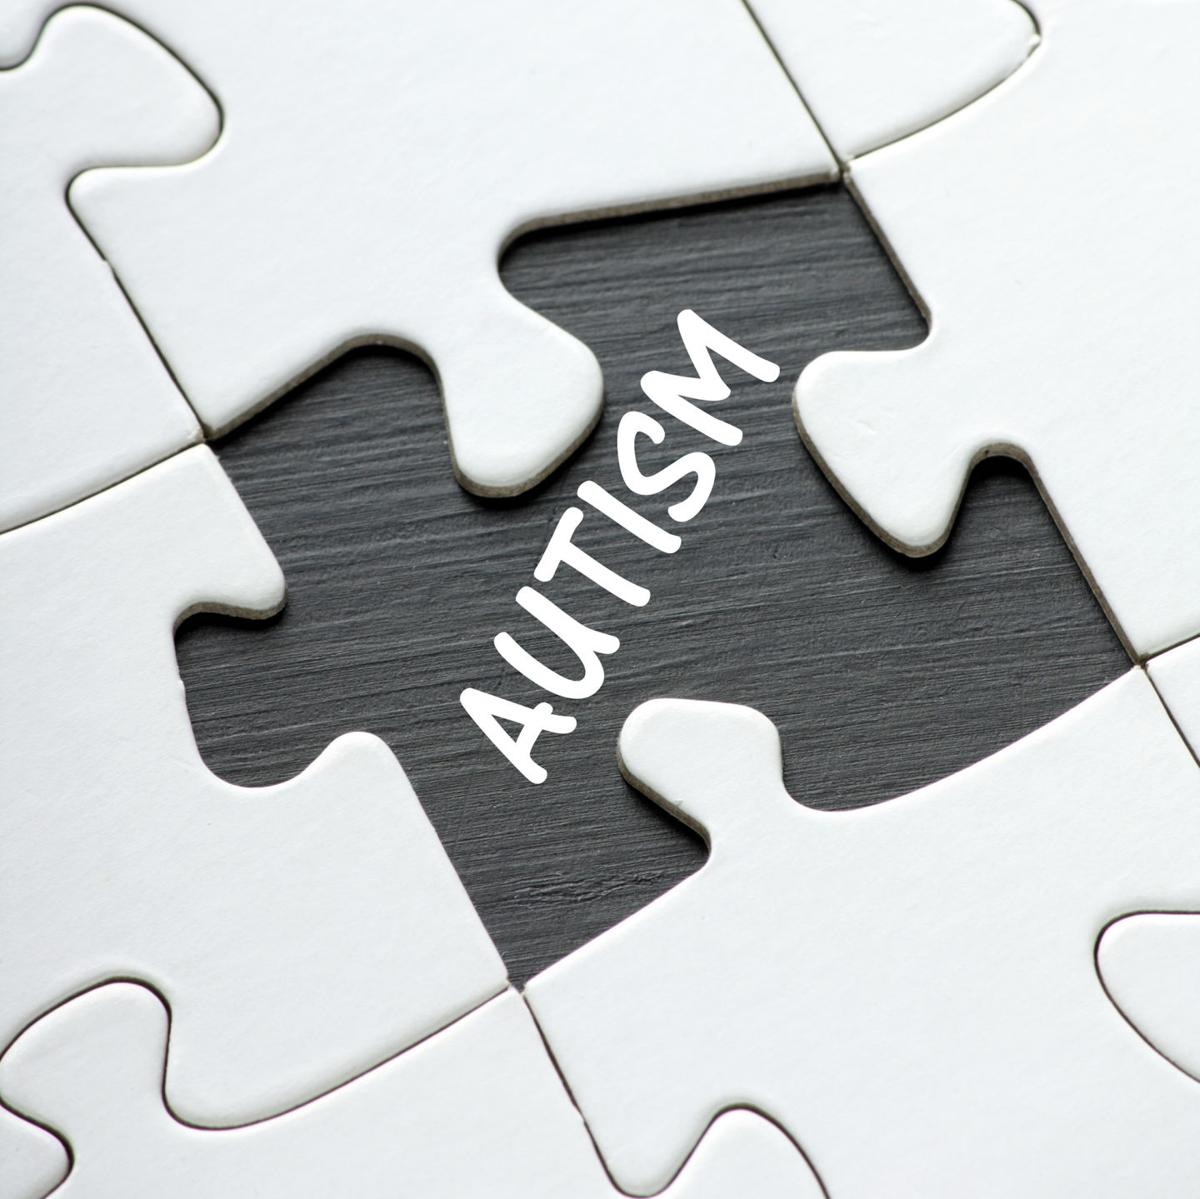 A quarter of kids with autism may go undiagnosed, Rutgers study finds